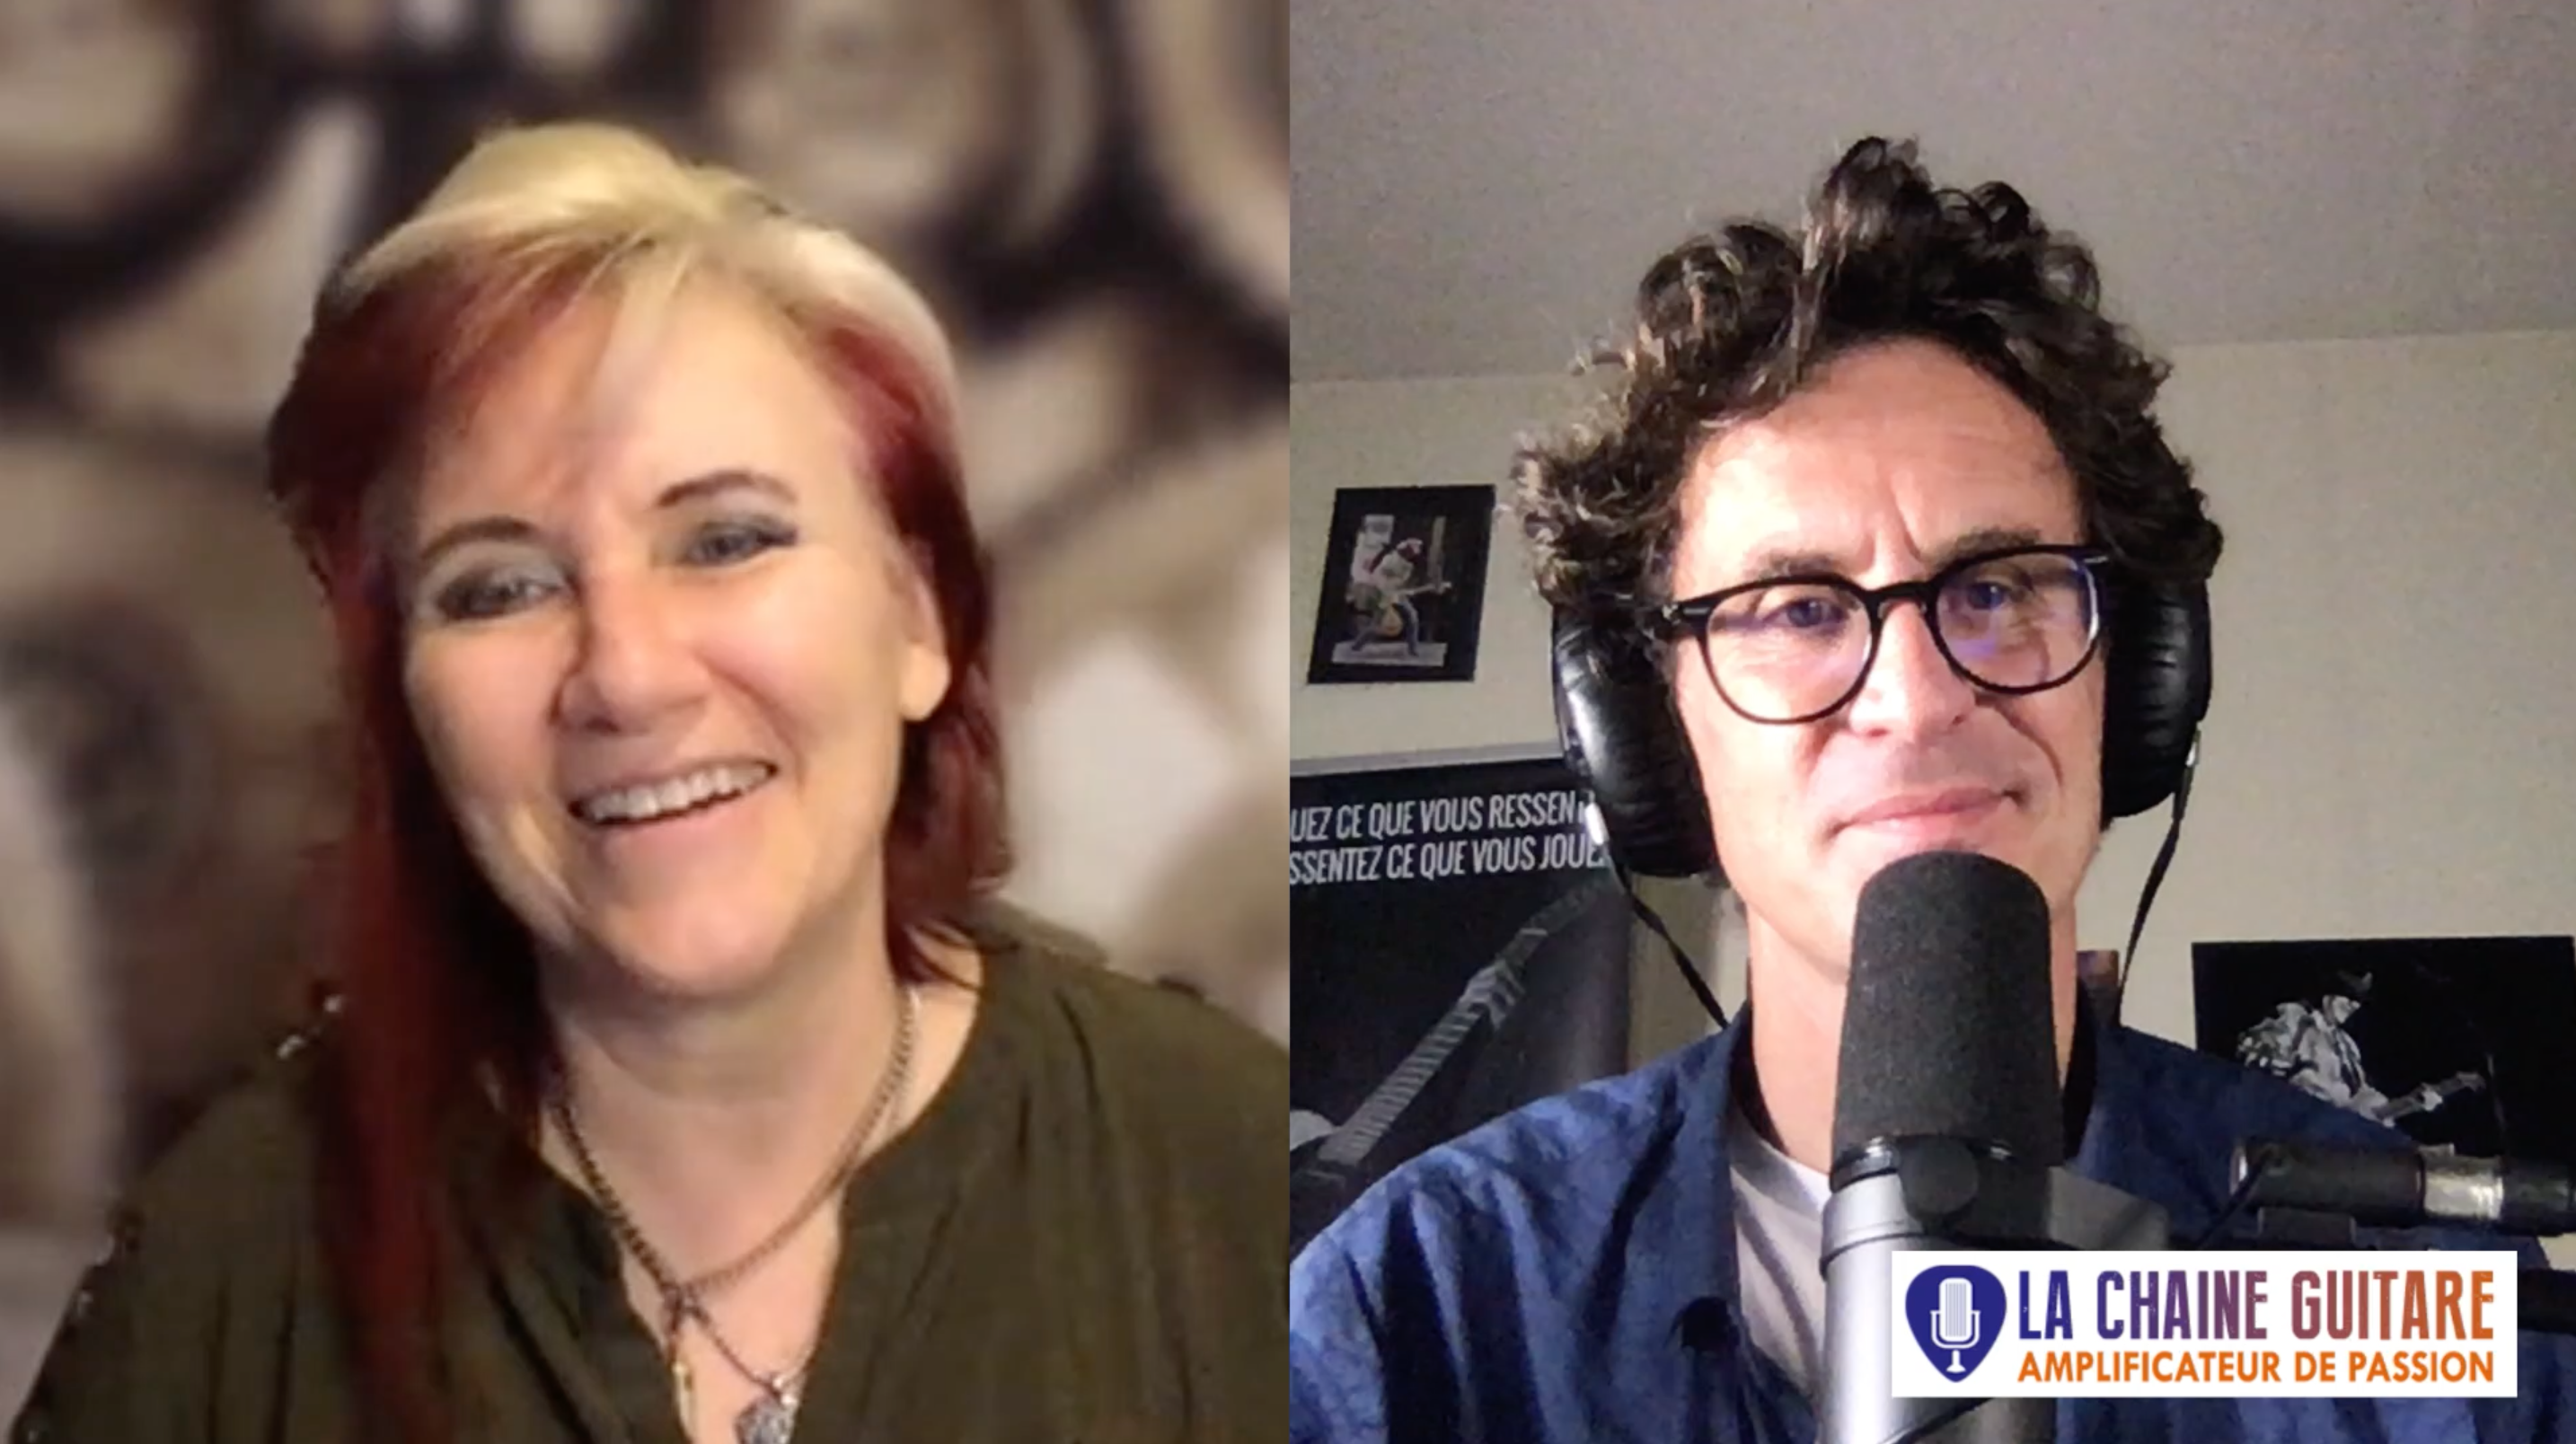 Jennifer Batten live interview about Eddie Van Halen legacy, her projects and more